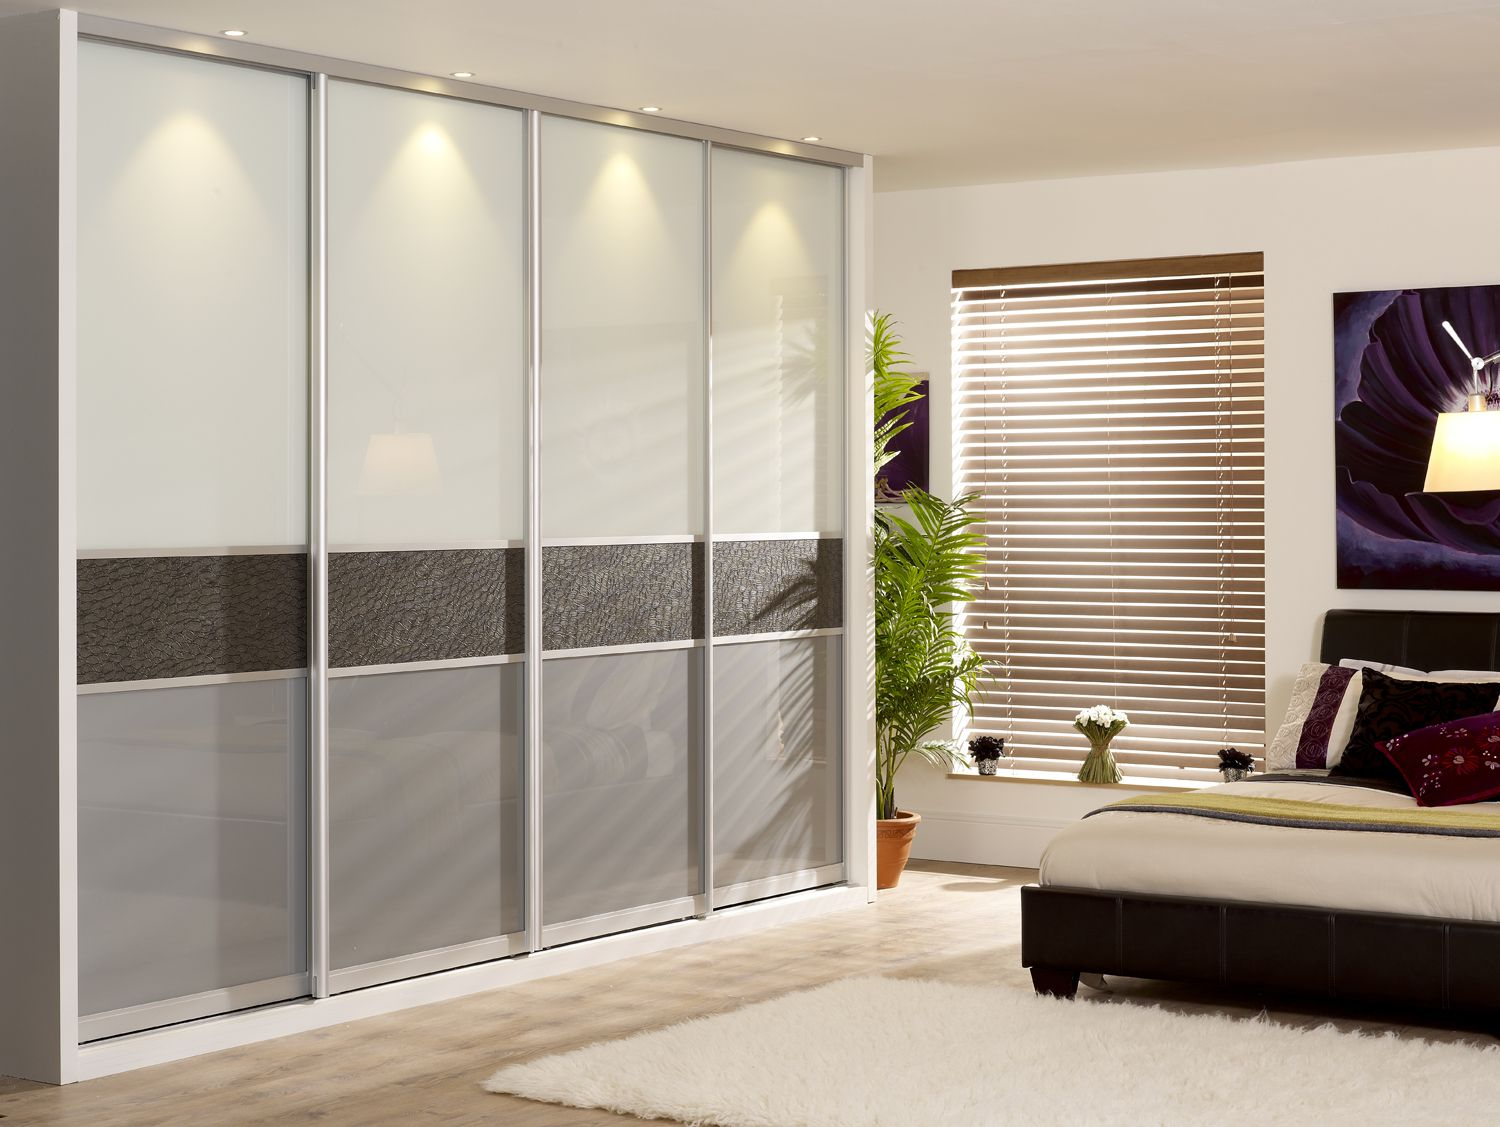 Modern Wardrobe Design Laminate Wardrobe Designs Small Wardrobe Designs ,  Find | Sliding door wardrobe | Pinterest | Modern wardrobe designs, ...